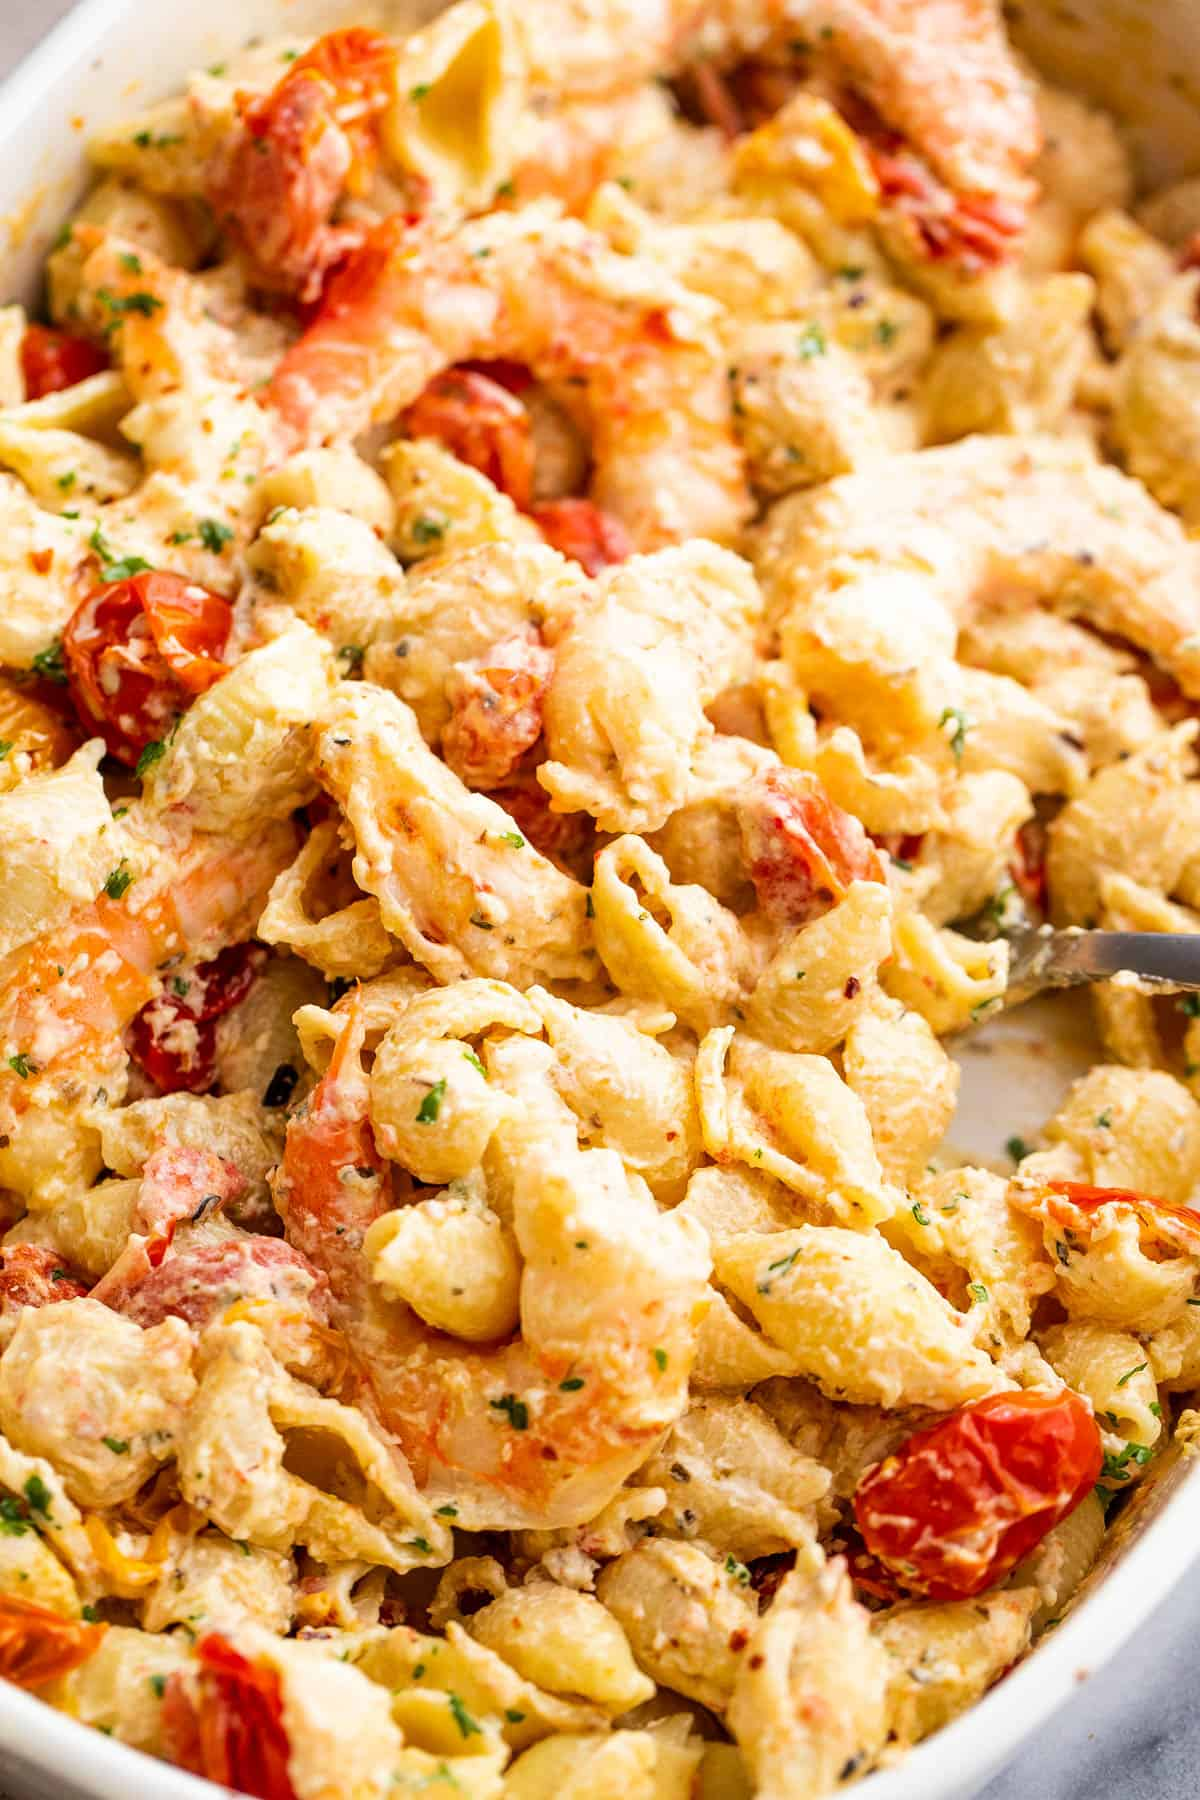 shrimp and pasta tossed with a cream cheese sauce and cherry tomatoes